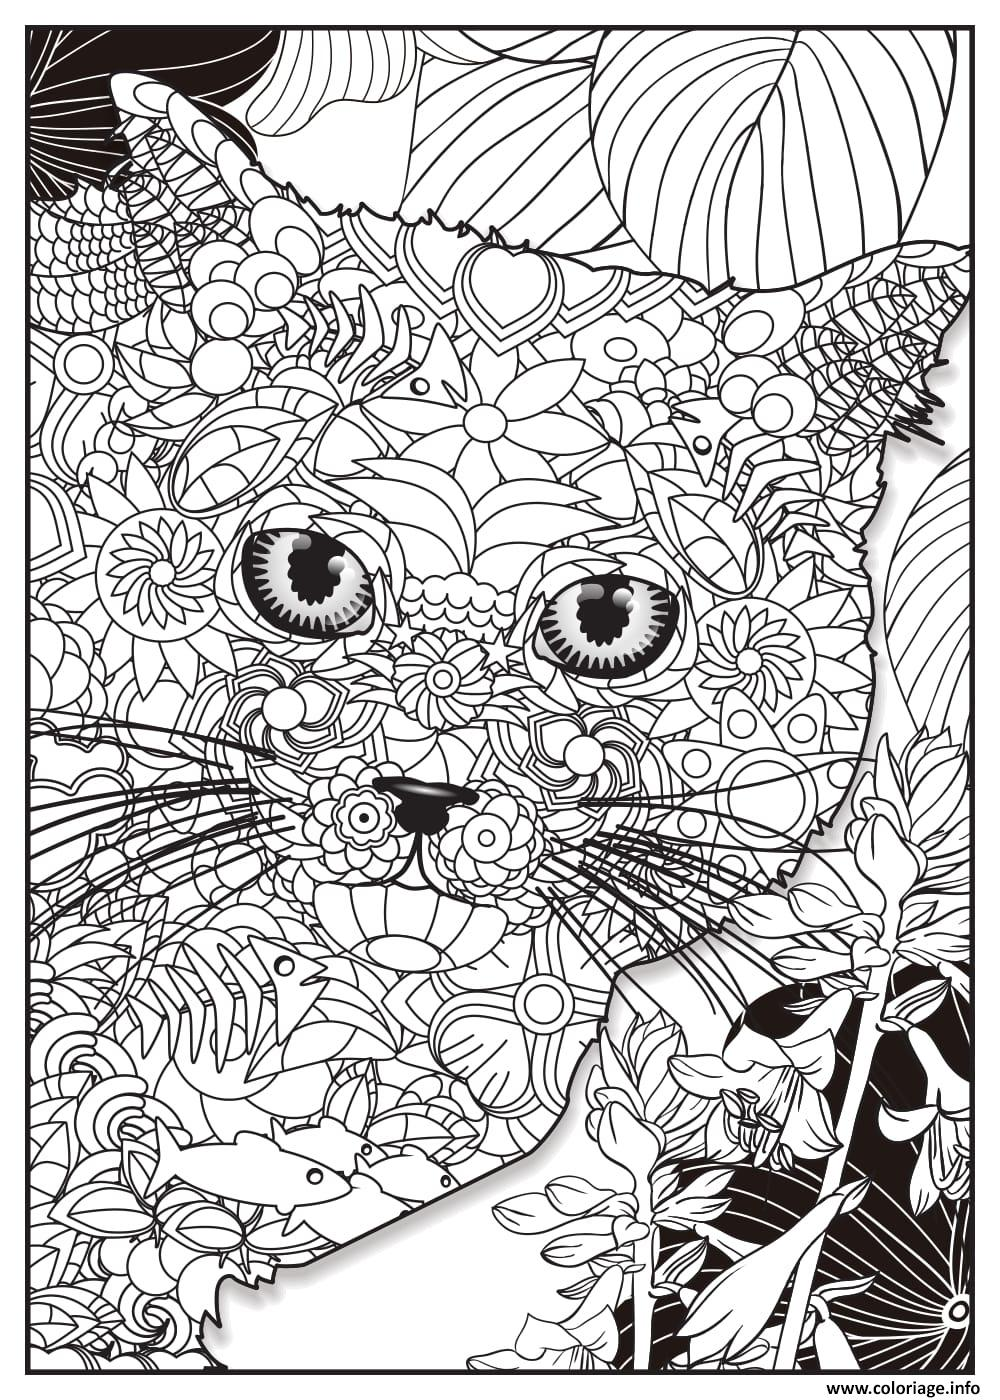 Coloriage Chat British Shorthair Adulte Animaux Dessin à Imprimer